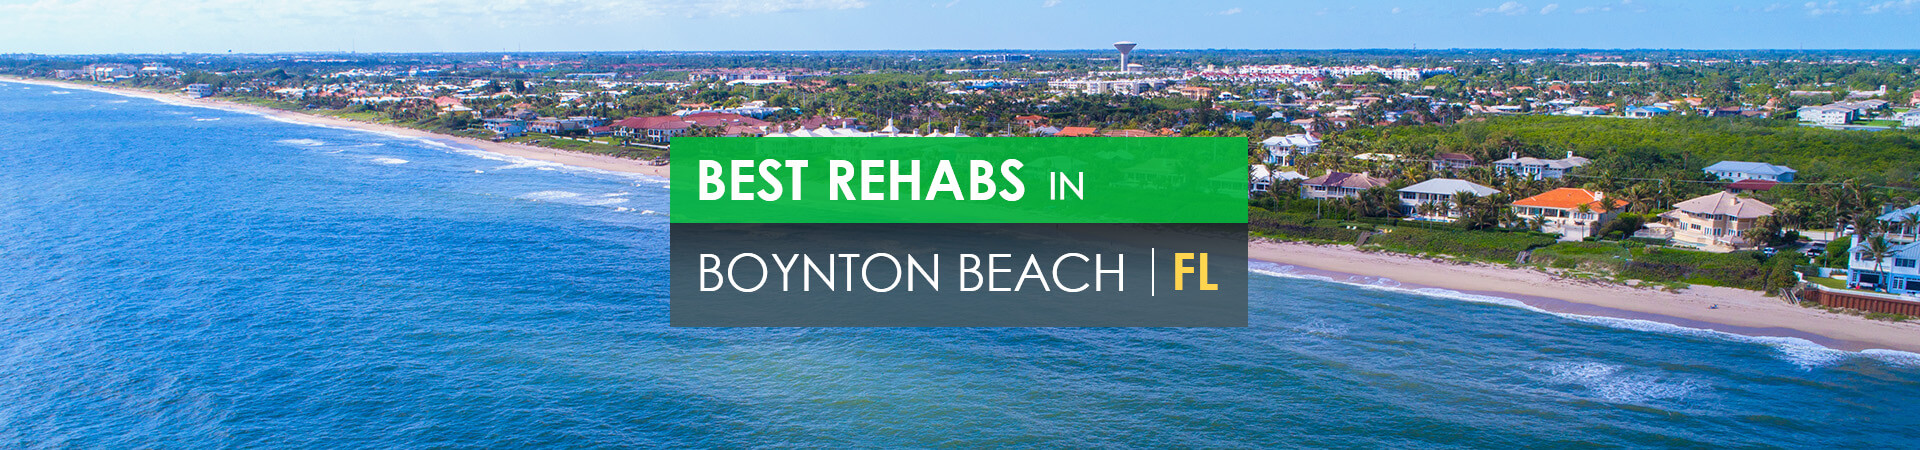 Best rehabs in Boynton Beach, FL